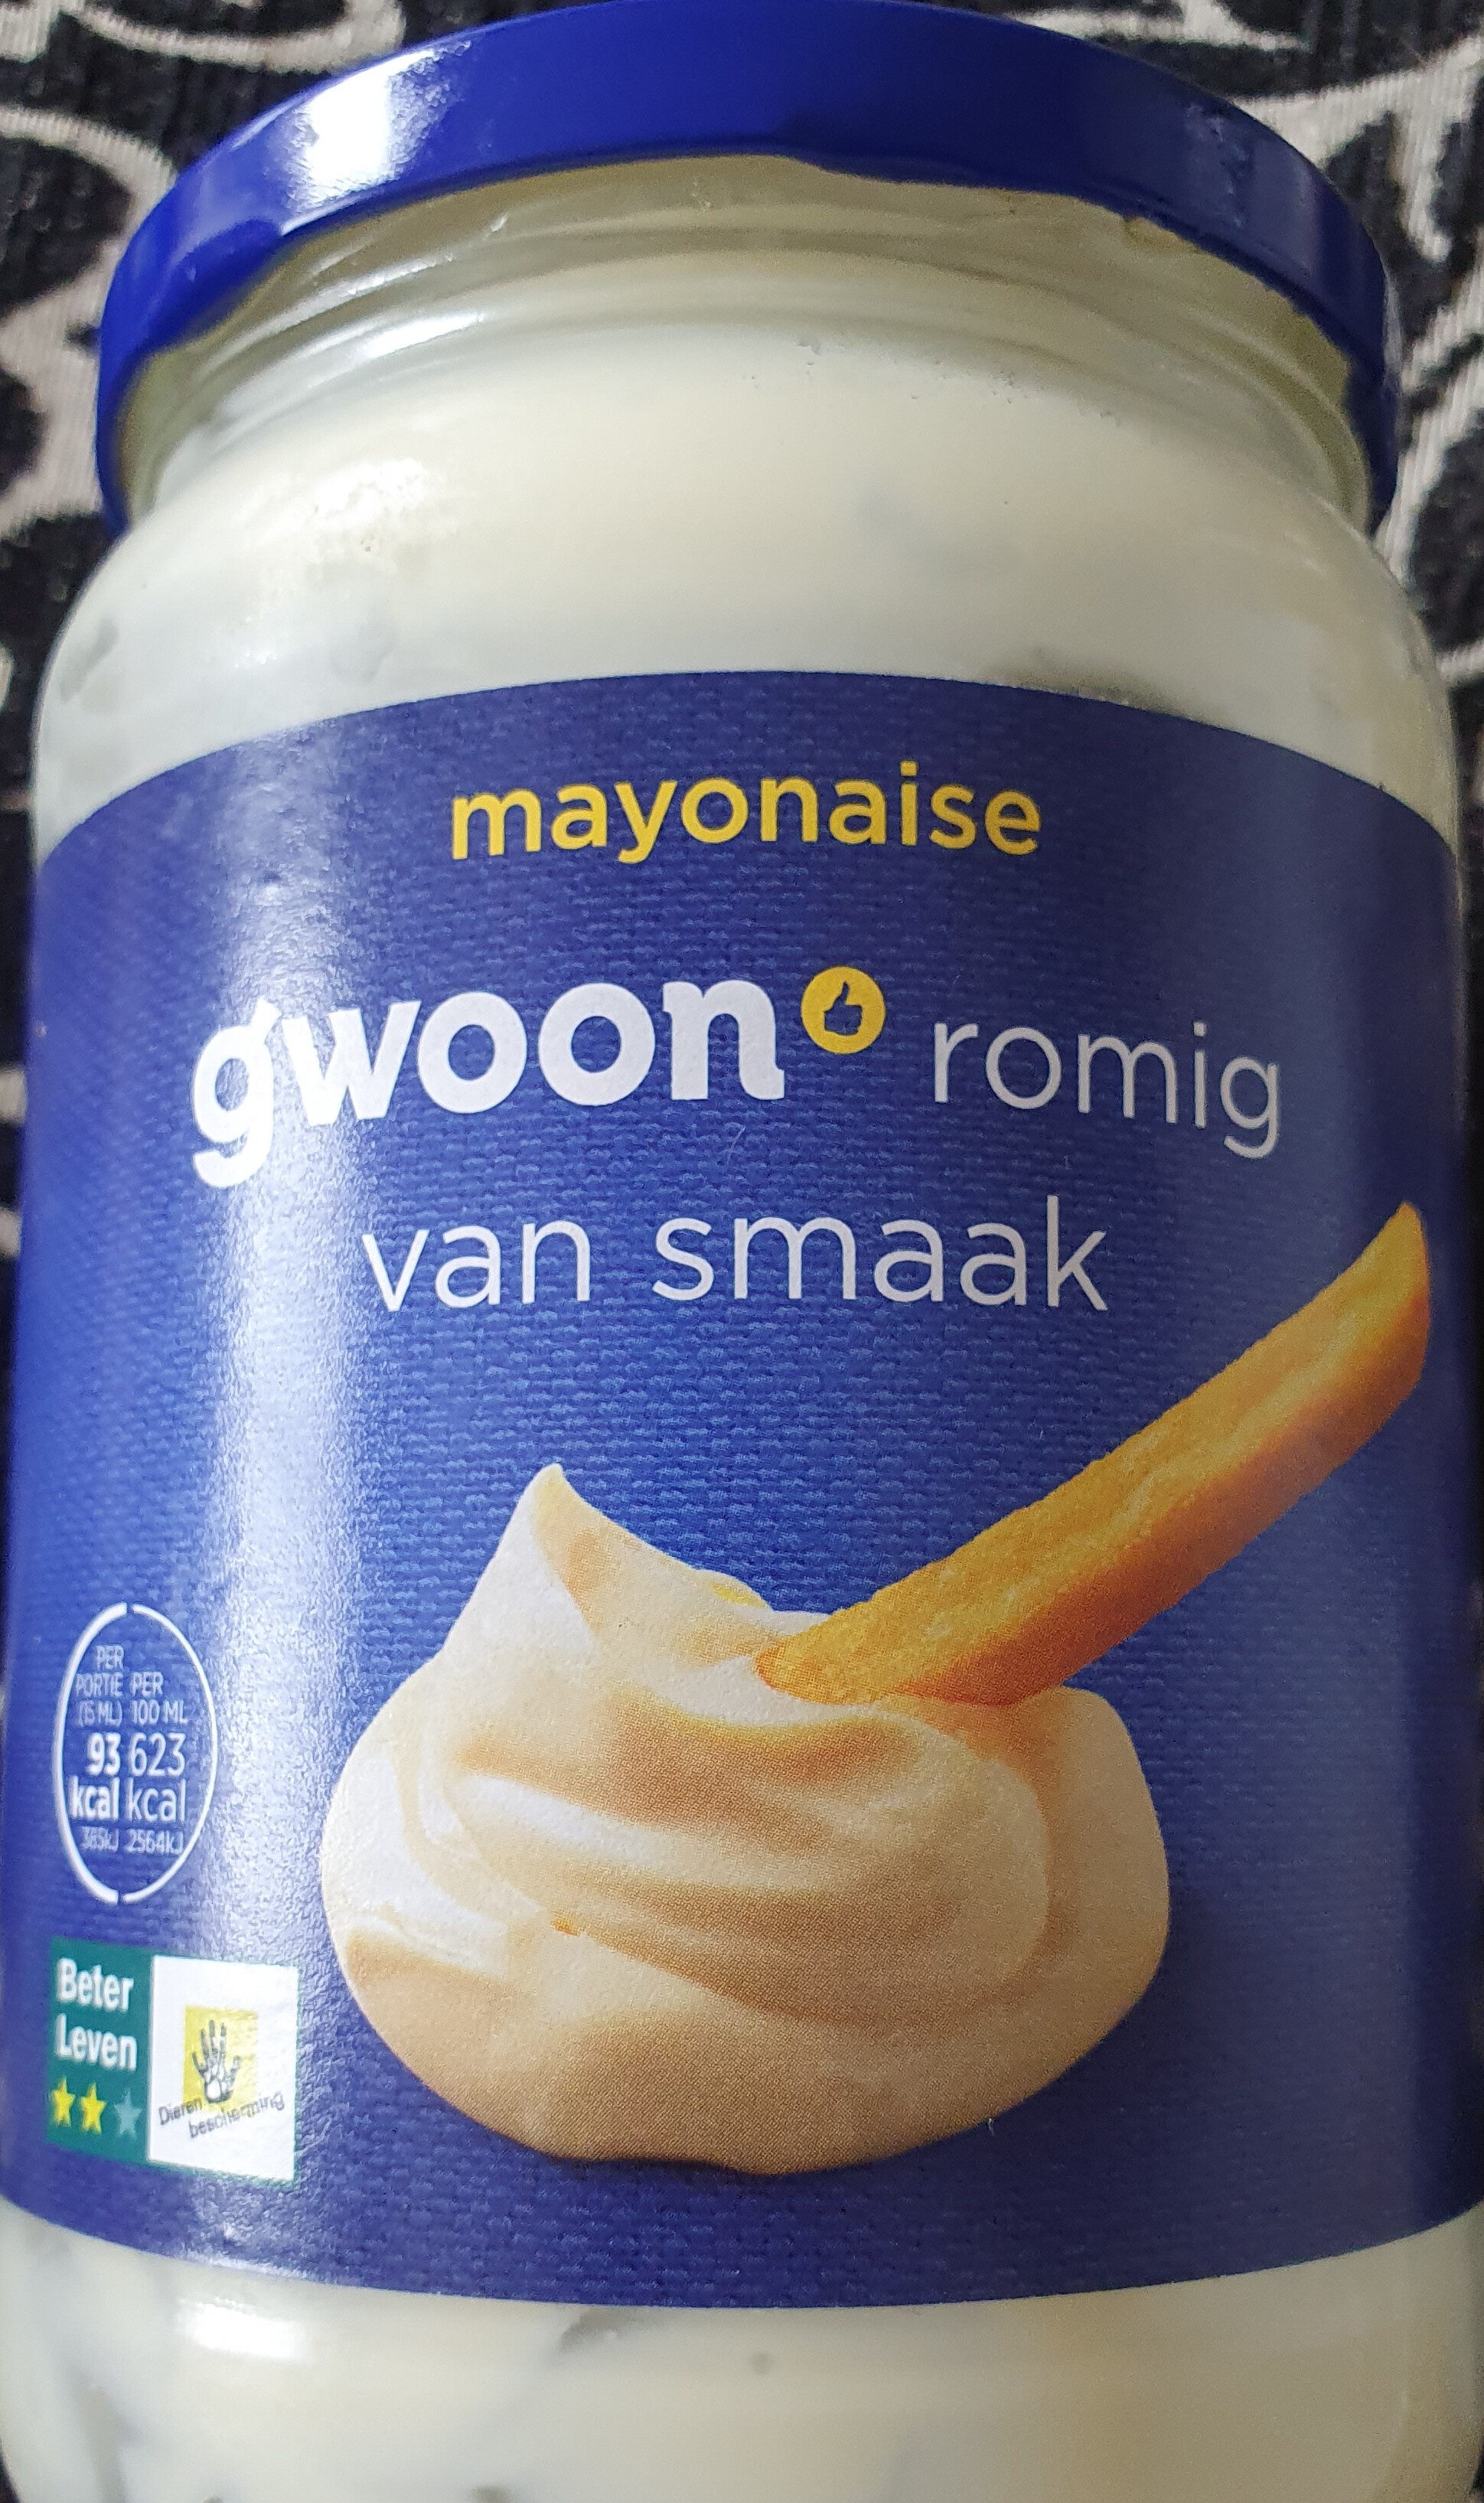 Mayonaise g'woon, romig - Product - nl